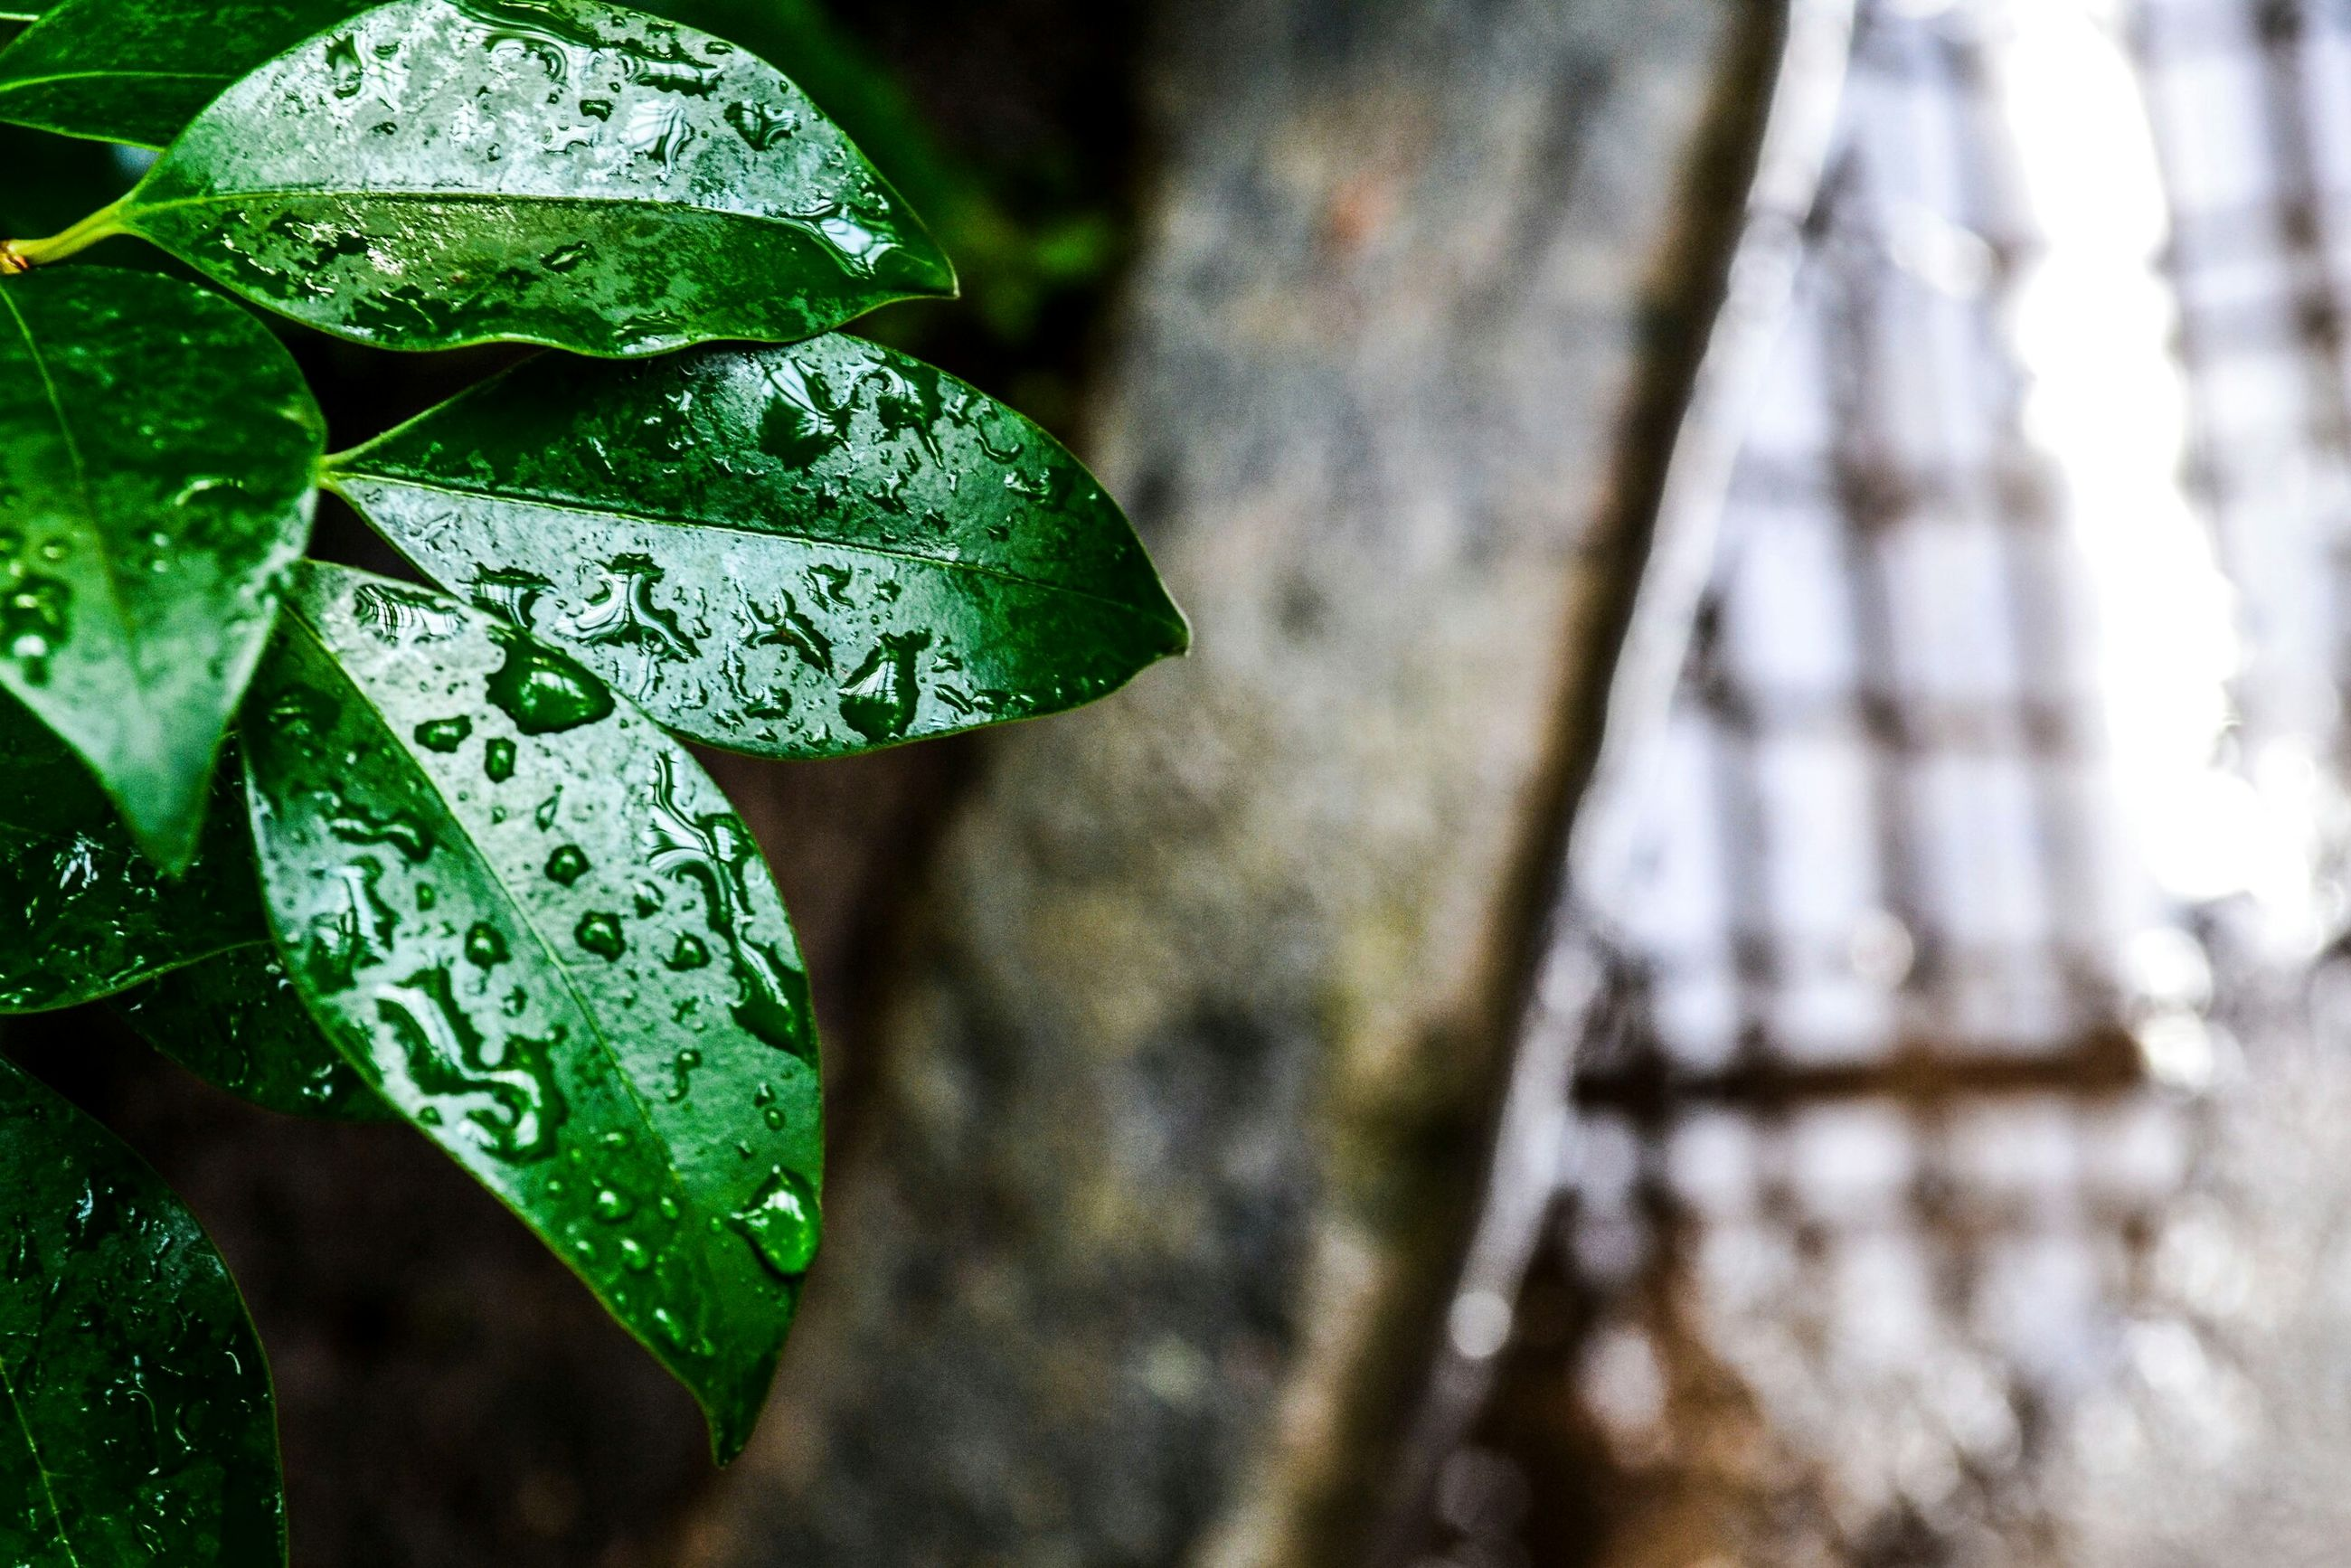 leaf, close-up, green color, focus on foreground, selective focus, leaf vein, growth, drop, nature, water, wet, leaves, plant, freshness, beauty in nature, natural pattern, day, outdoors, green, fragility